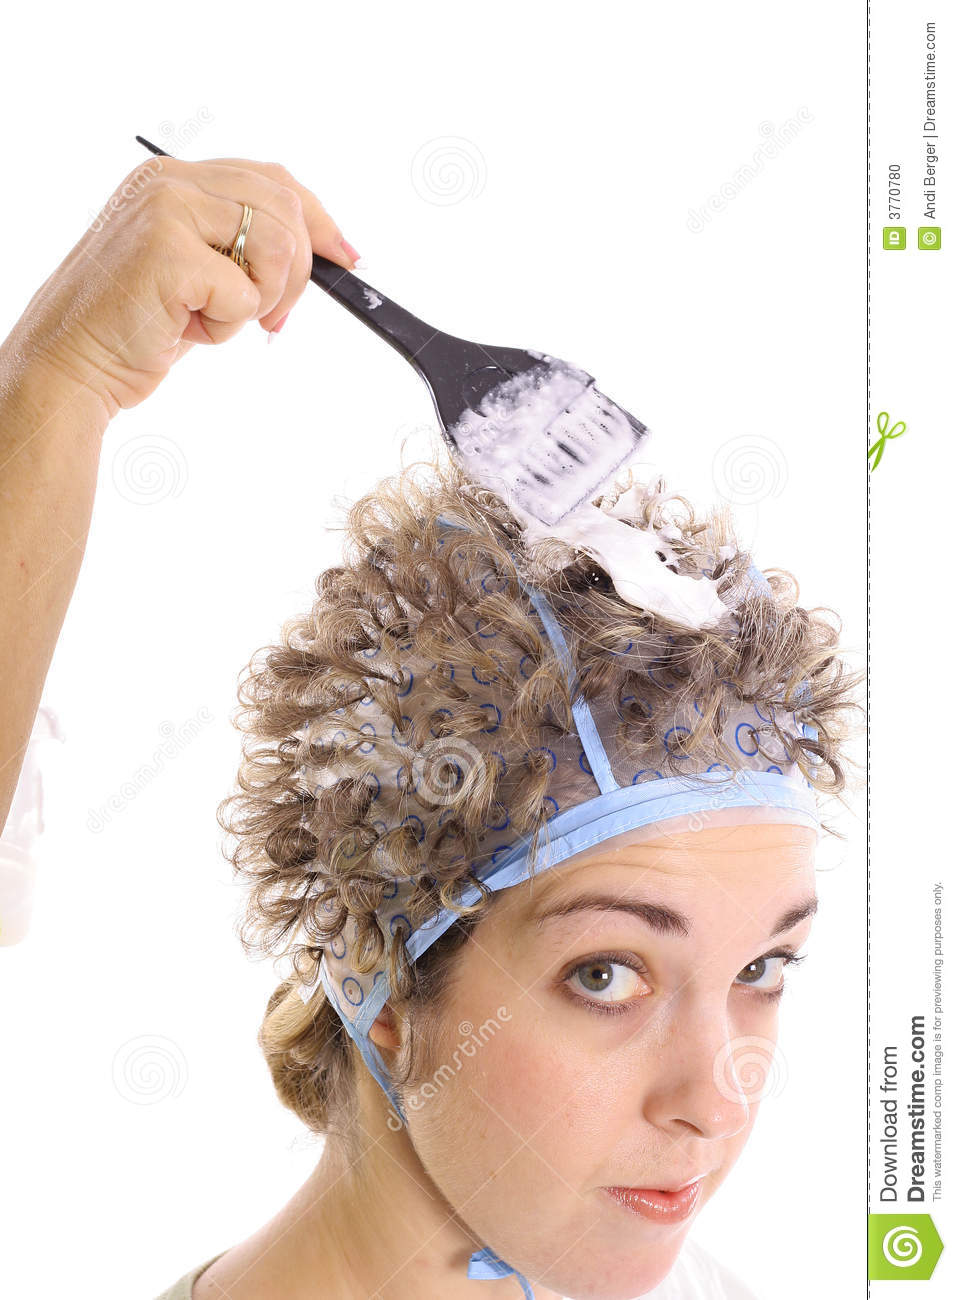 Bleaching hair with bleach upclose isolated on white background.